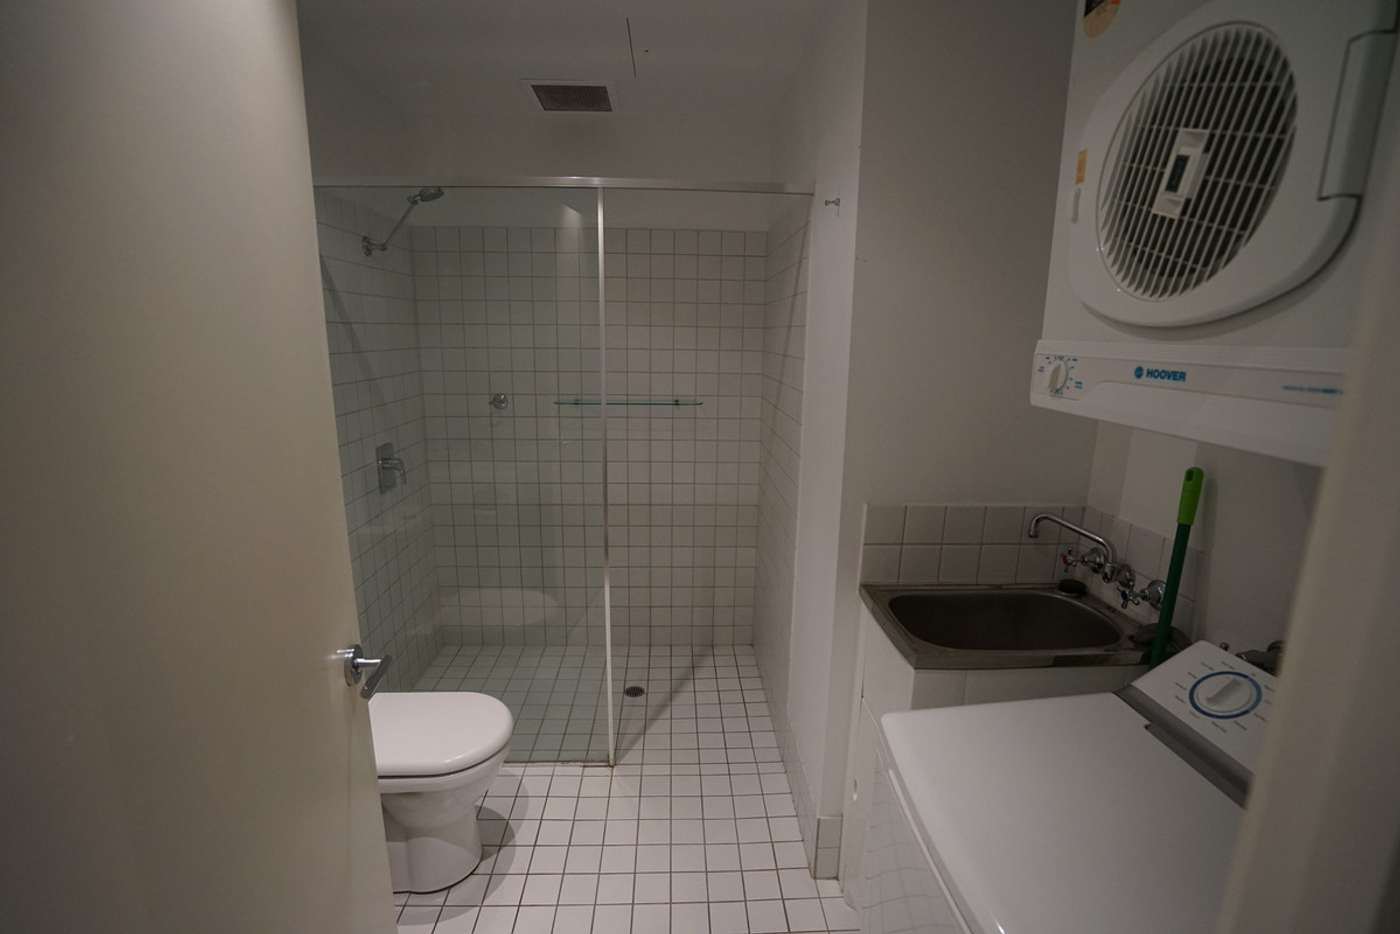 Seventh view of Homely apartment listing, 45 York Street, Adelaide SA 5000